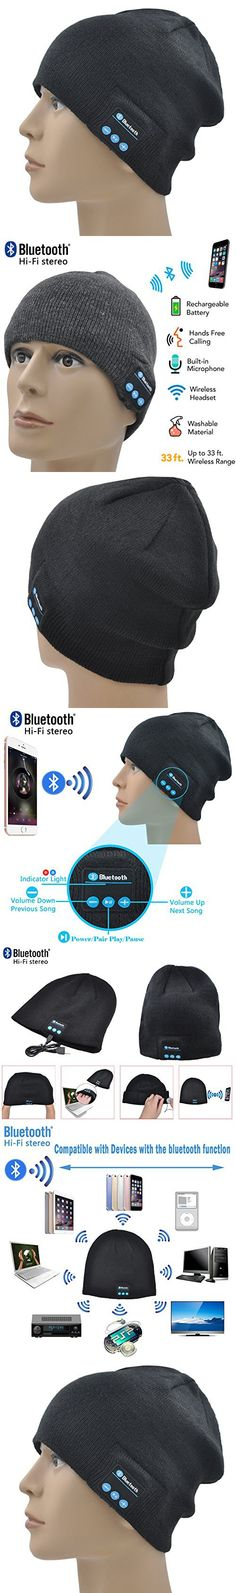 XIKEZAN Bluetooth Beanie Hat Wireless Washable Knit Cap Winter Hats With Built in Stereo Speakers Headphones & Earphones Christmas Gifts (Black)